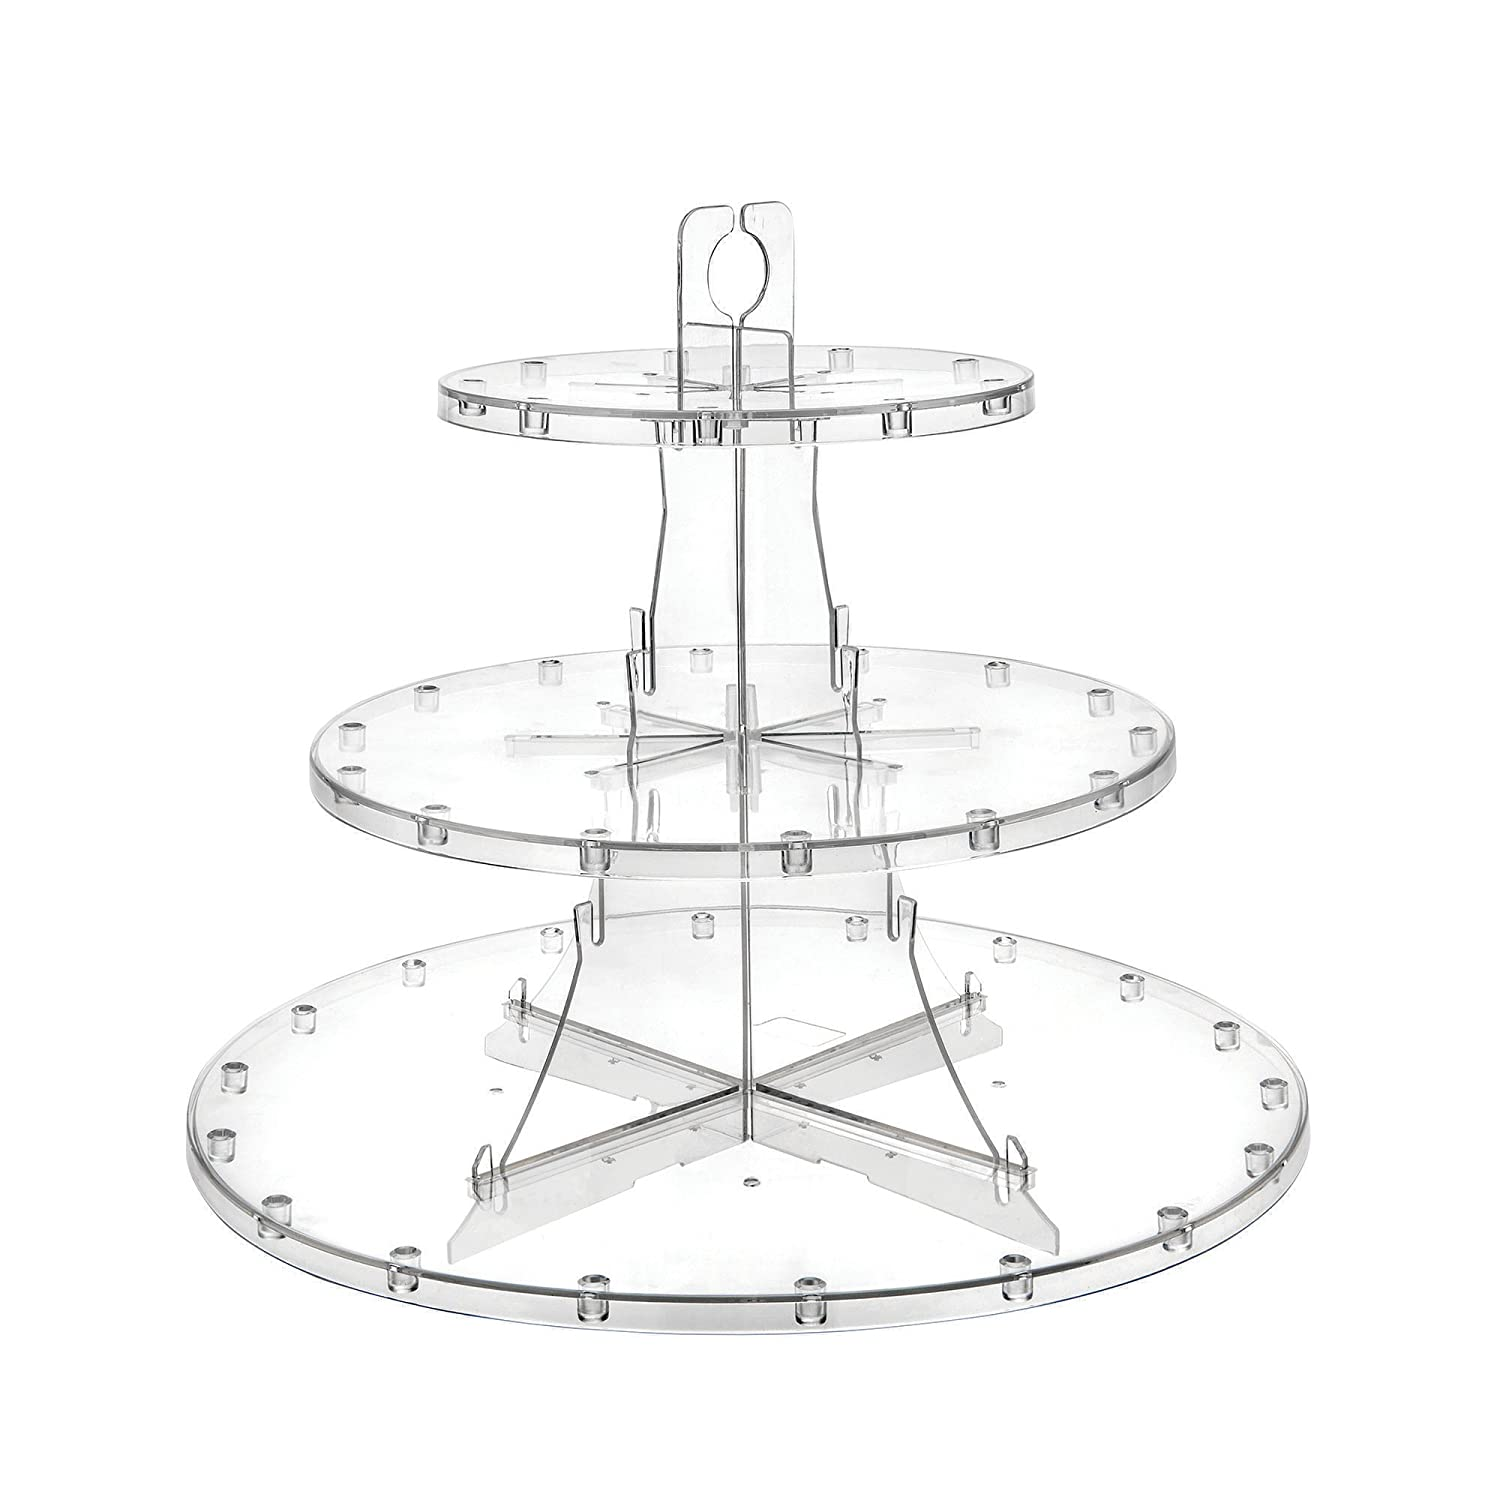 """Deflecto 3 Tier Dessert Stand, Adjustable Tiers, Serving Platter, Display Cupcakes, Cake Pops, Fruits and Danish, 13.25"""" x 11.3"""" x 13.25"""" (20201CR)"""